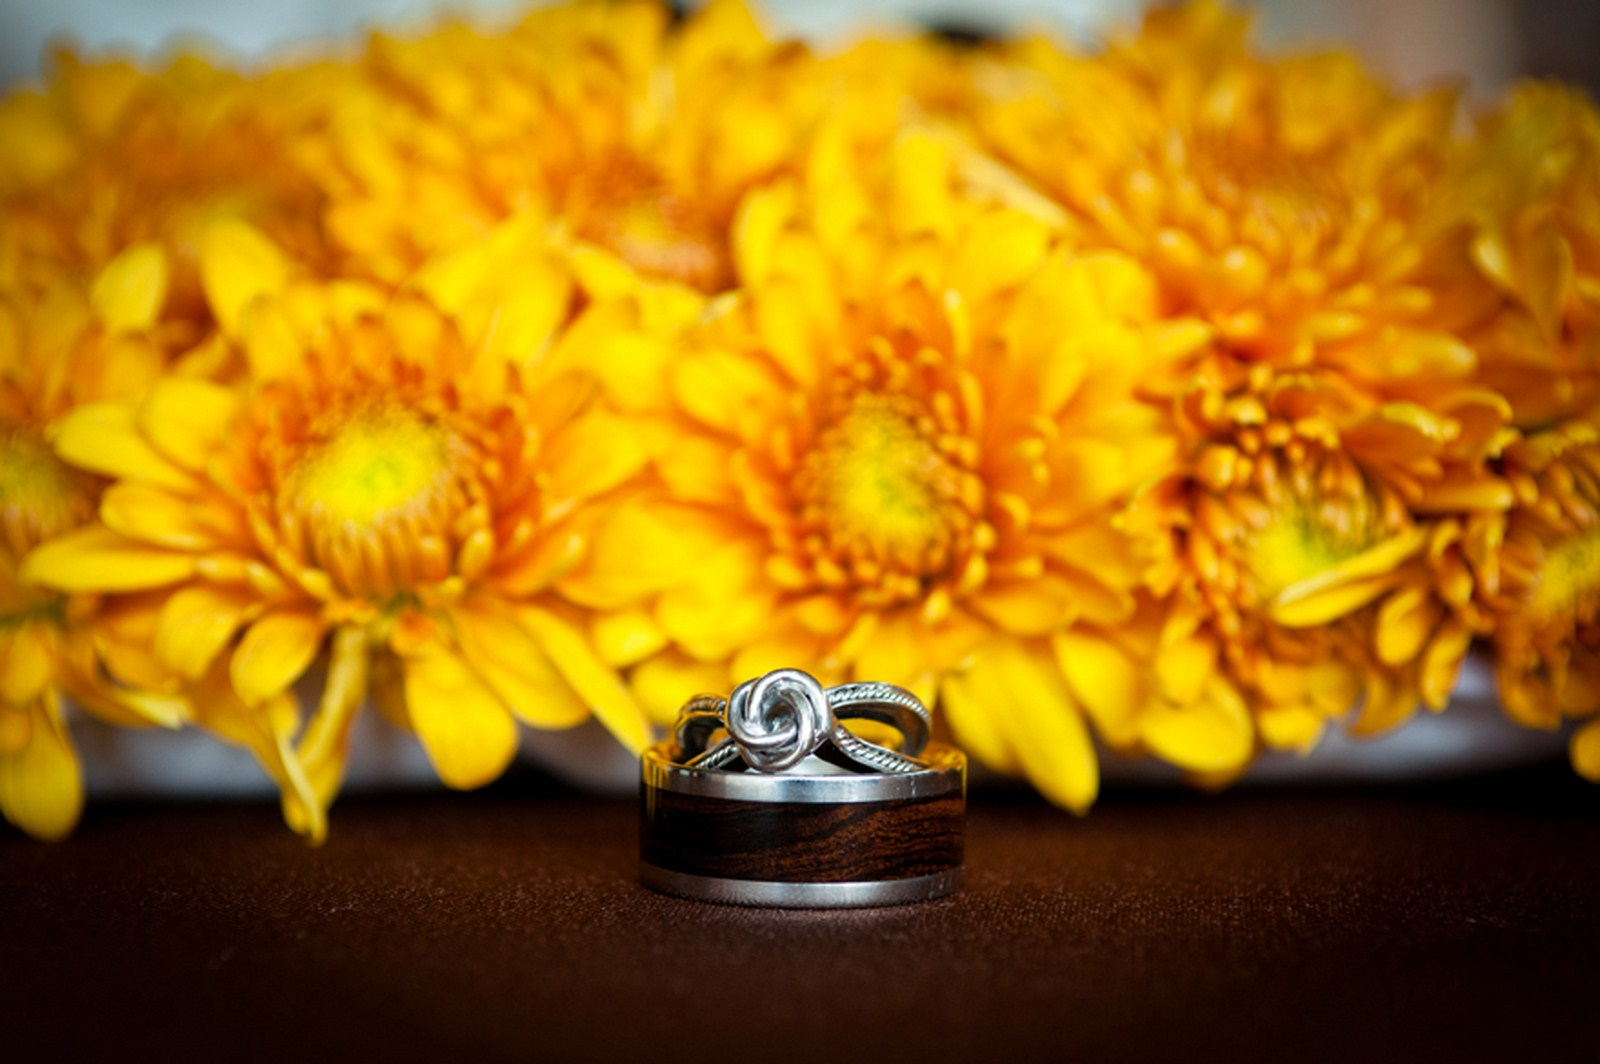 6 bride and groom rings wedding ring pictures bride and groom rings with flowers Kent Drake photography Life Design events.jpg